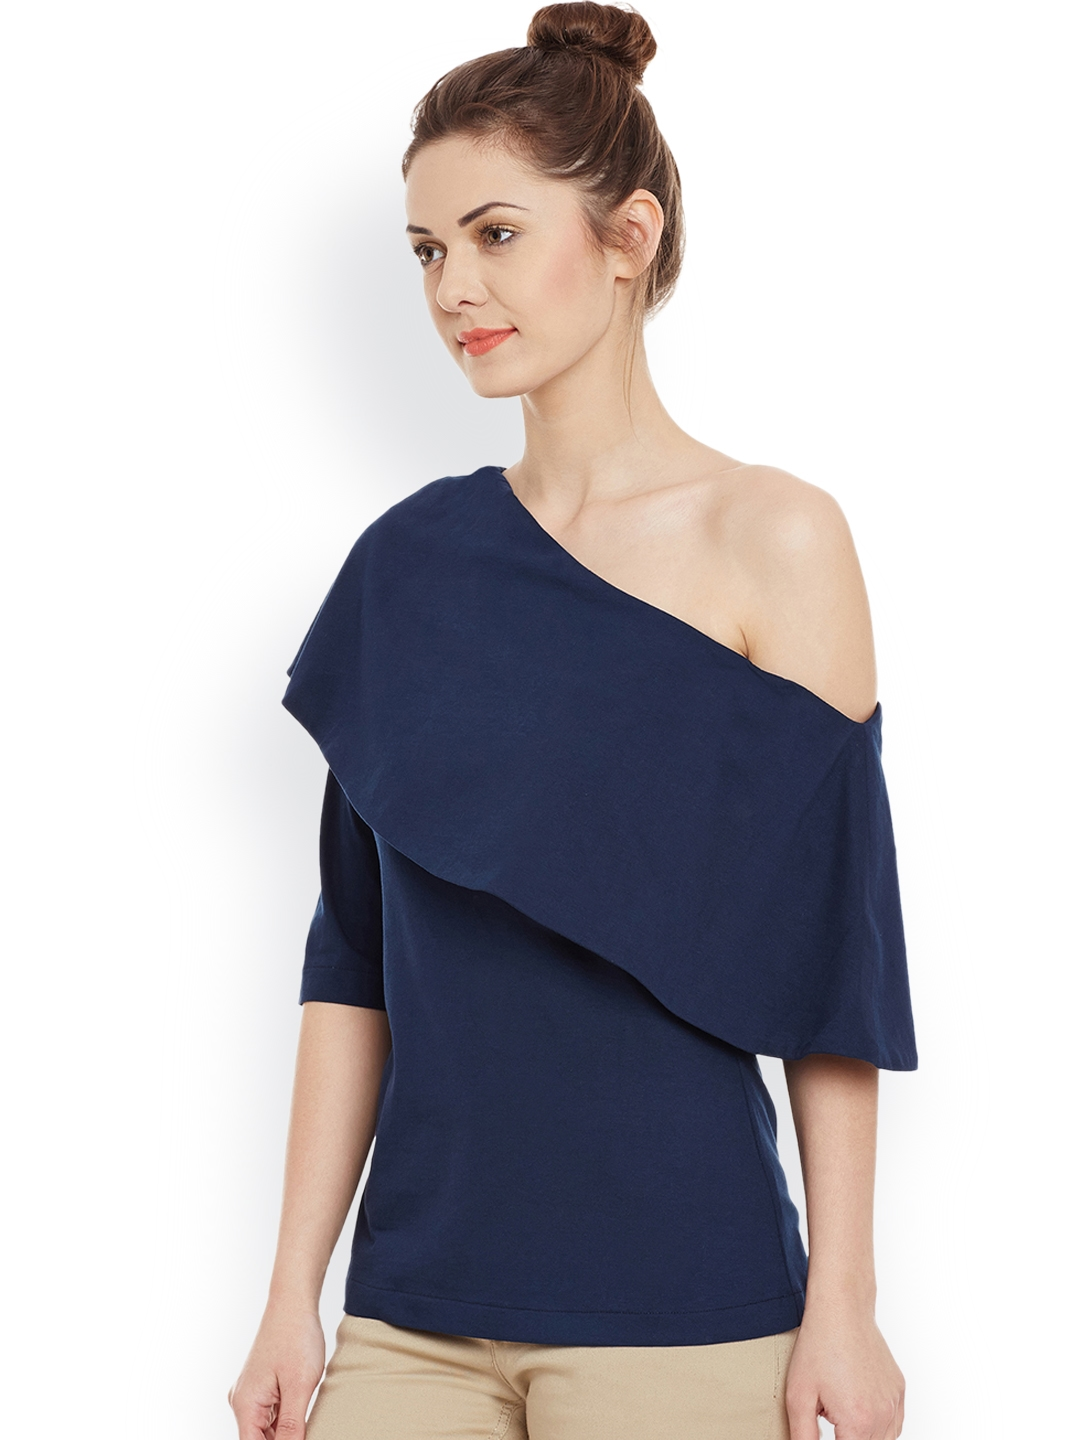 084628bed01083 Buy Miss Chase Navy One Shoulder Top - Tops for Women 1823188